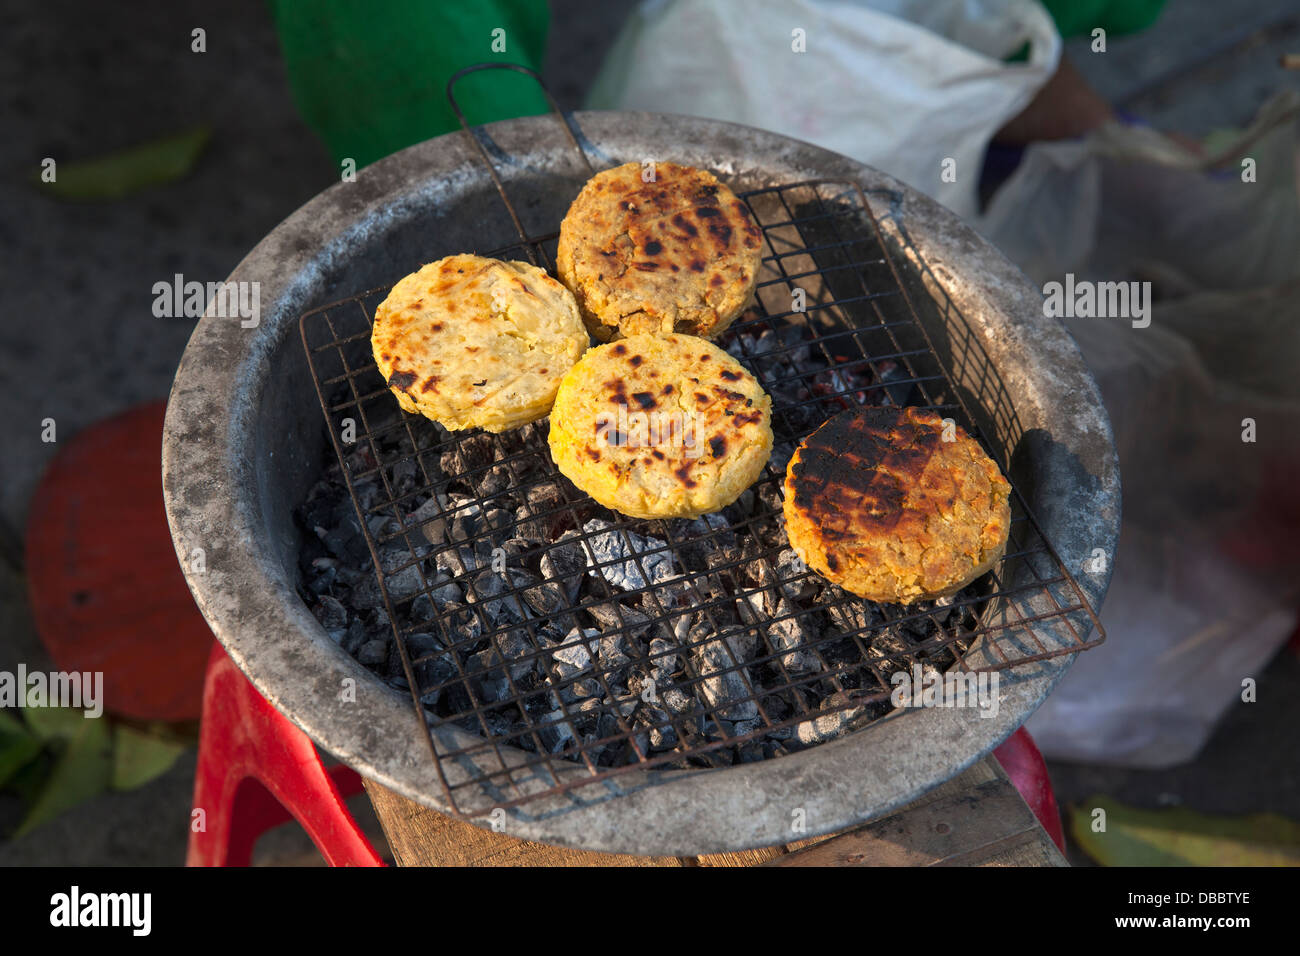 Sweet potato cakes grilling outside on street in Old Quarter, Hoi An, Quang Nam, Vietnam, Southeast Asia Stock Photo